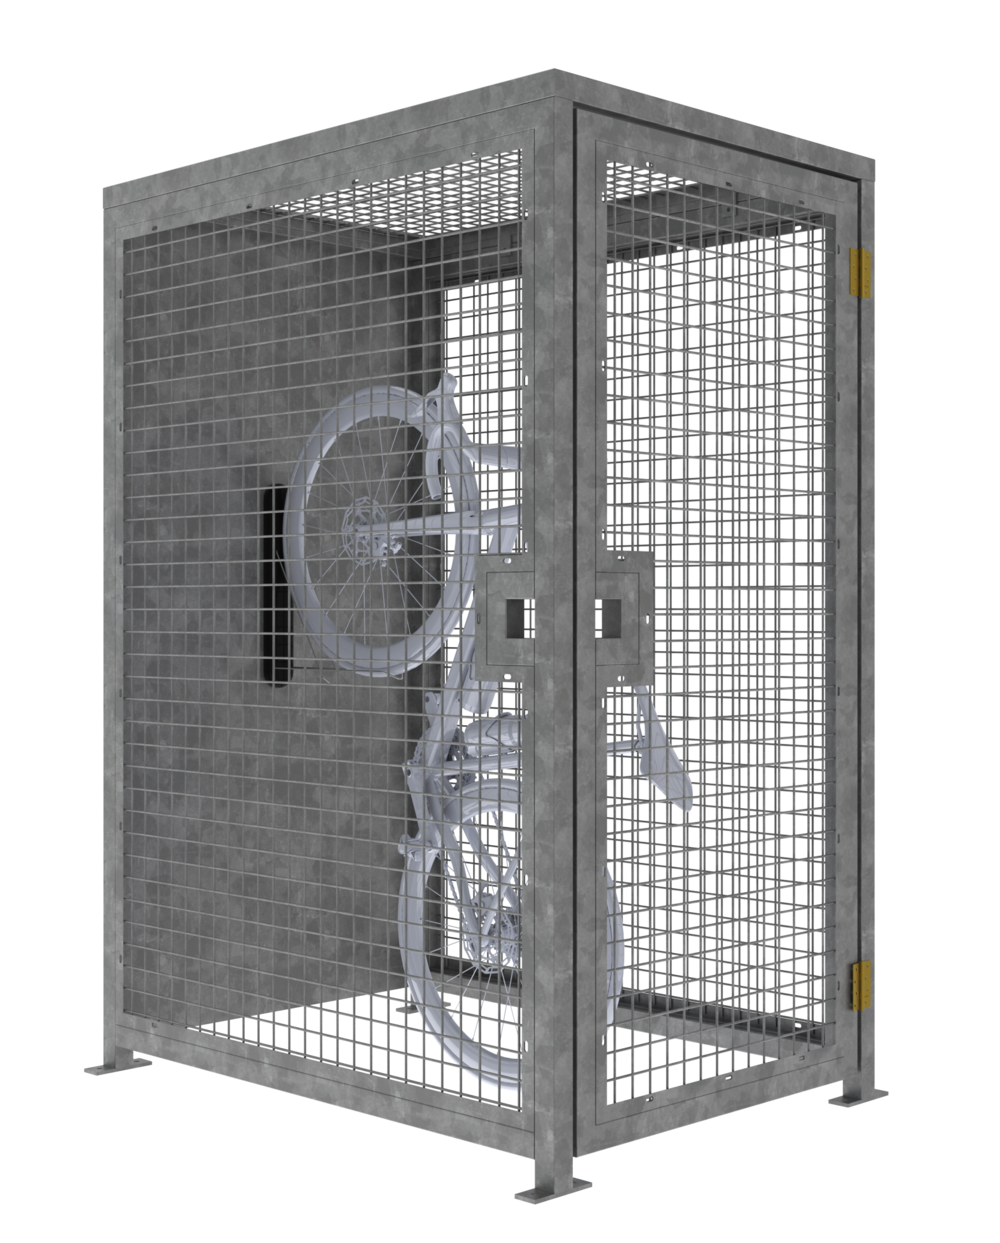 Single Bike Cage Render cropped.png